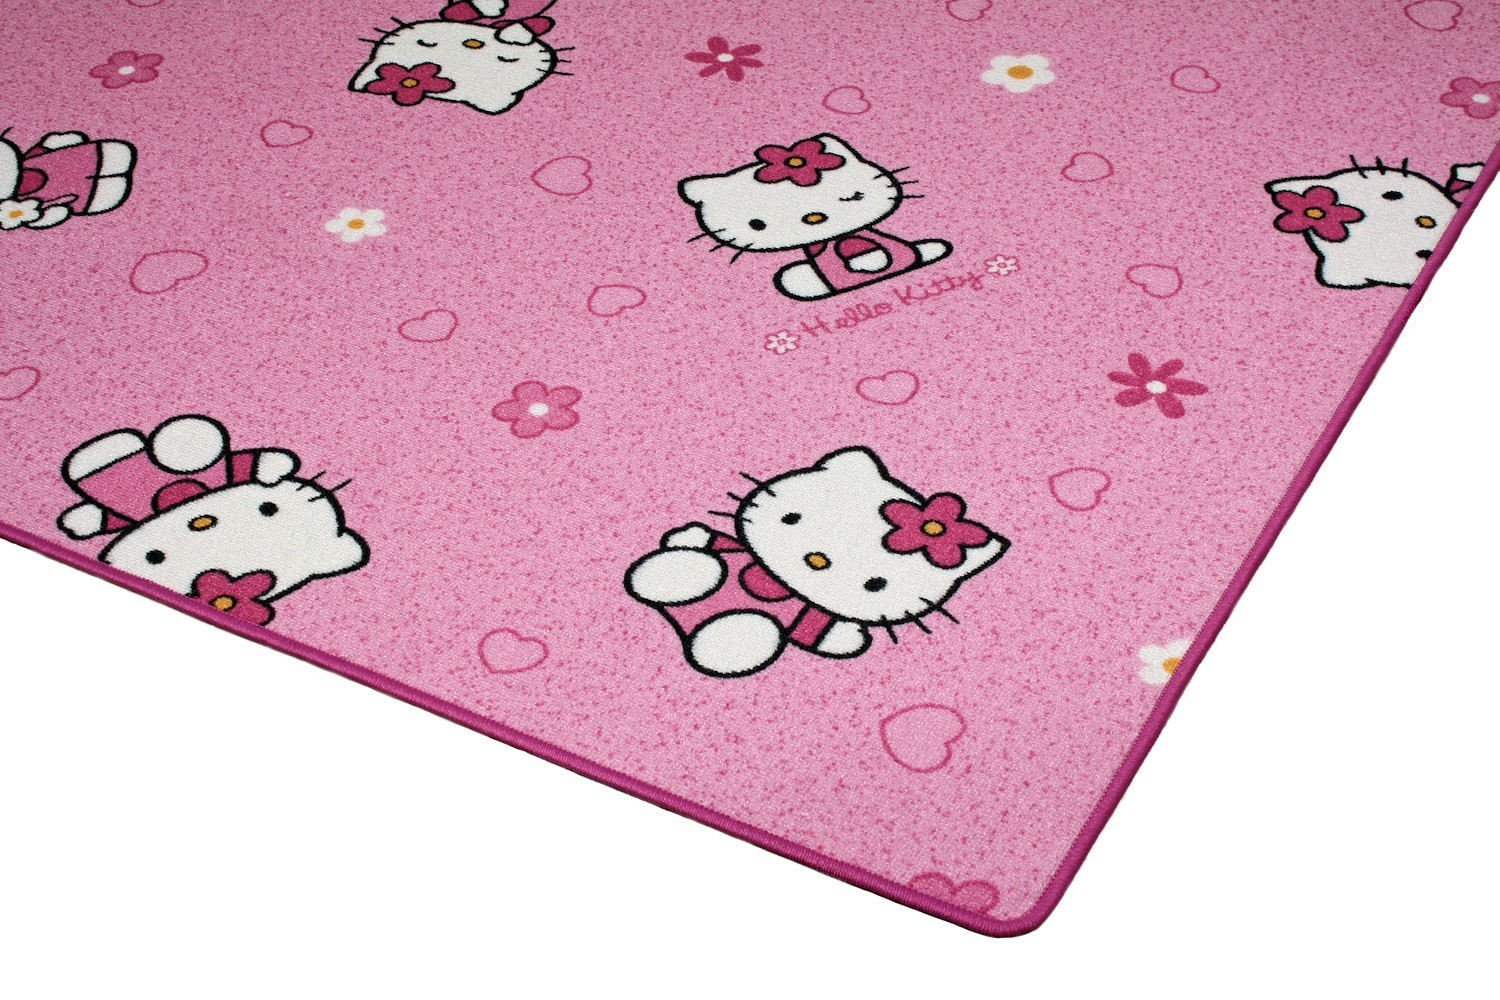 129107-Hello-Kitty-Teppich-clean